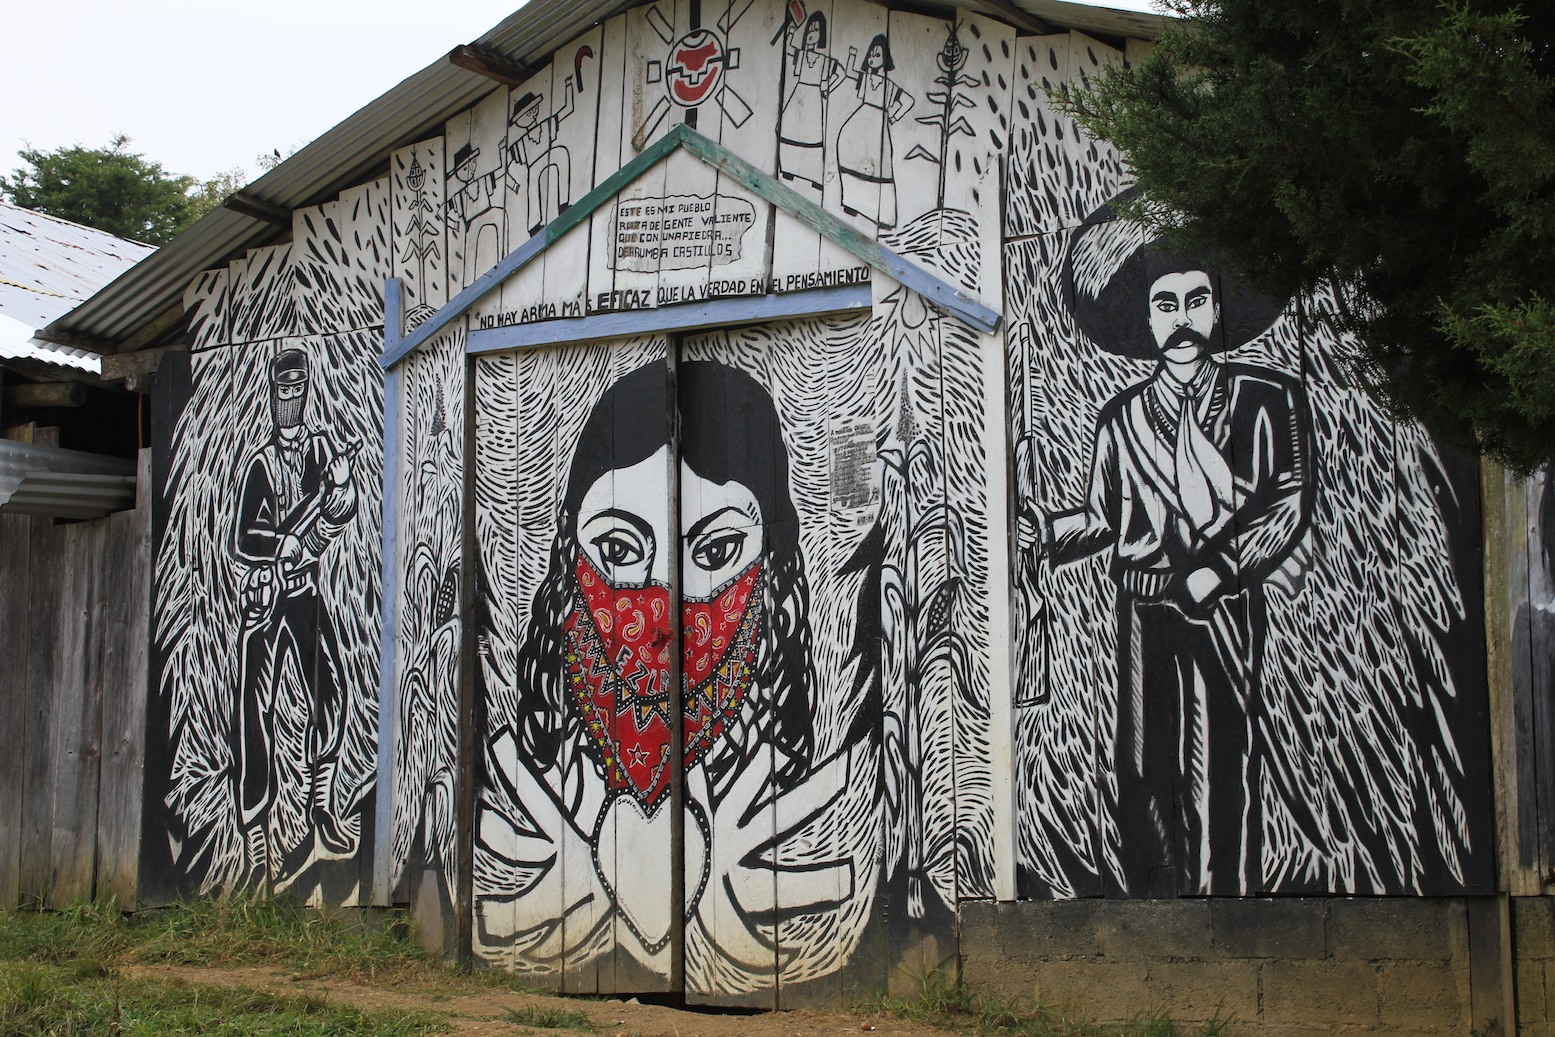 Mural zapatista my next film inspiration pinterest for Mural zapatista